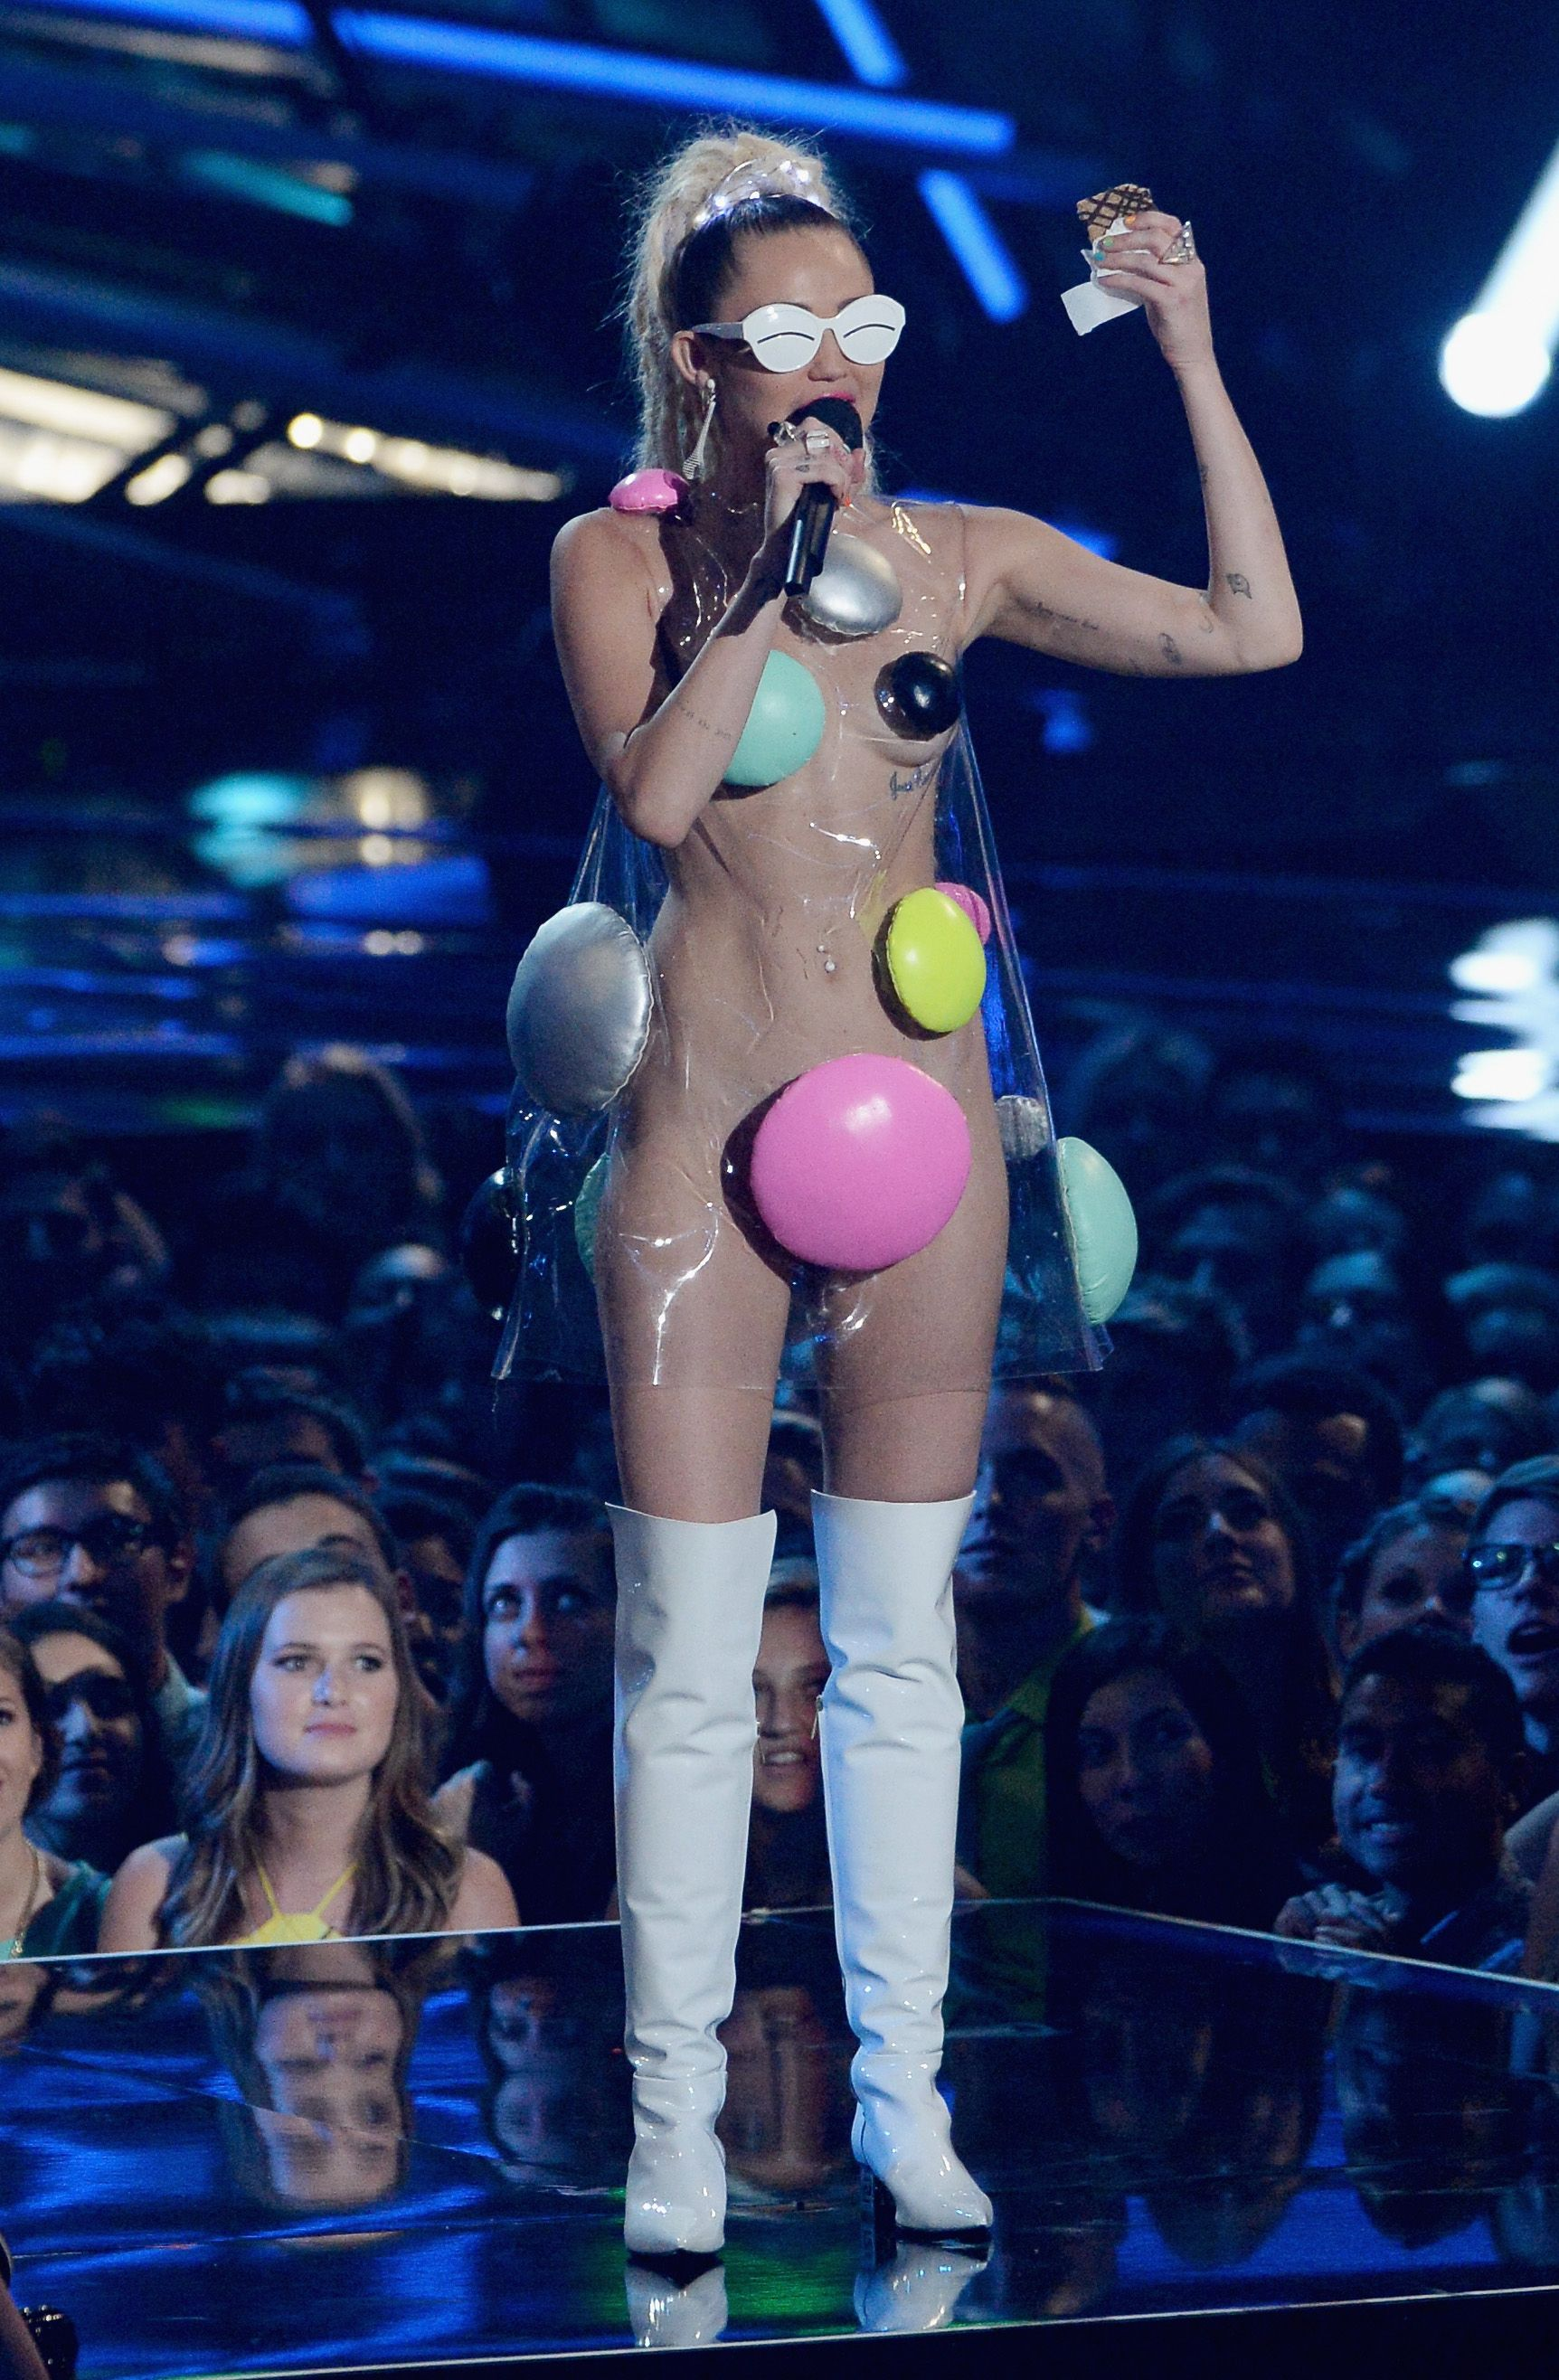 LOS ANGELES, CA - AUGUST 30: Host Miley Cyrus speaks onstage during the 2015 MTV Video Music Awards at Microsoft Theater on August 30, 2015 in Los Angeles, California. (Photo by Lester Cohen/WireImage)